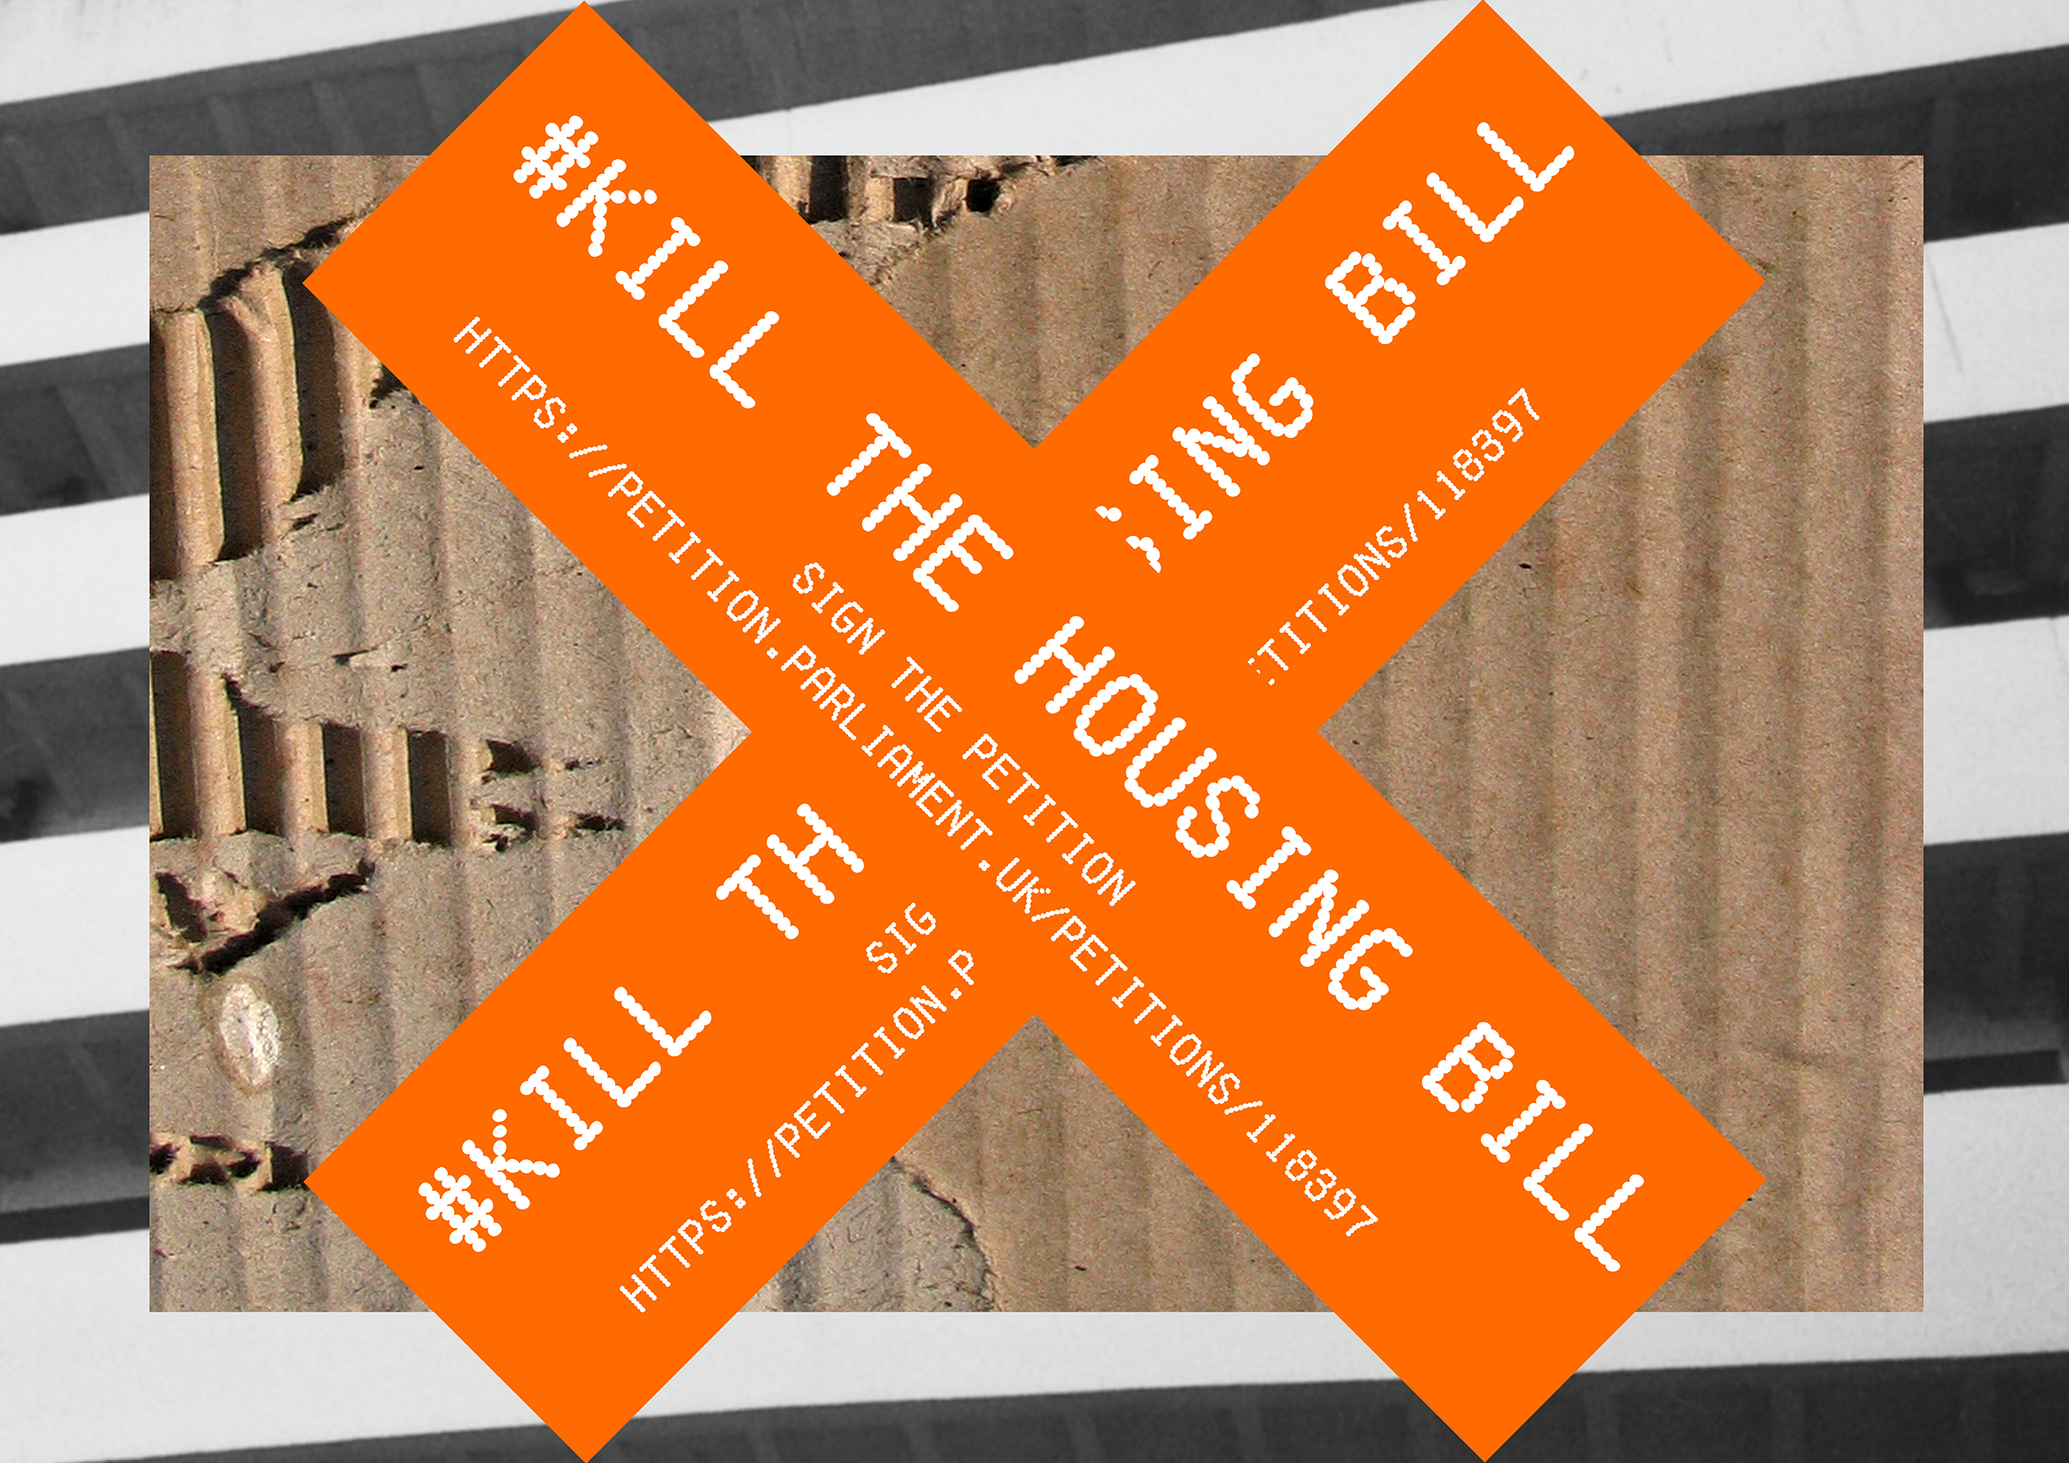 KILLTHEHOUSINGBILSNUFFCREATIVE2016L-LR.jpg